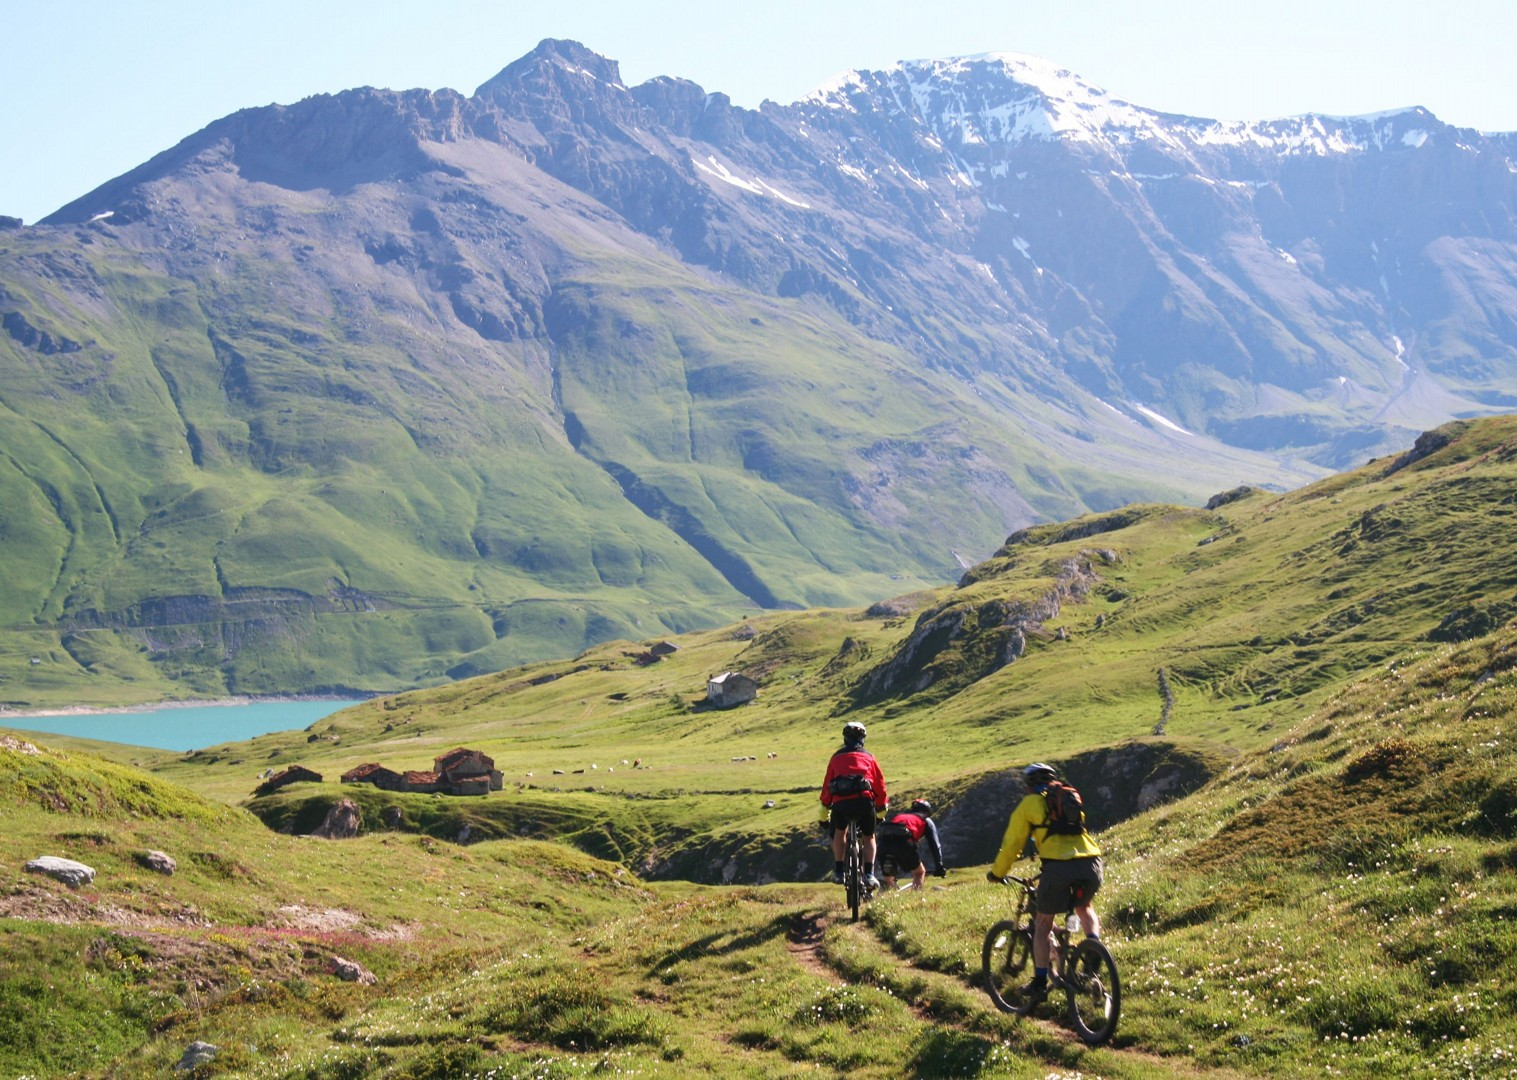 alps-mountain-bike-holiday-in-the-alps-alpine-adventure.JPG - Italy and France - Alpine Adventure - Guided Mountain Bike Holiday - Italia Mountain Biking